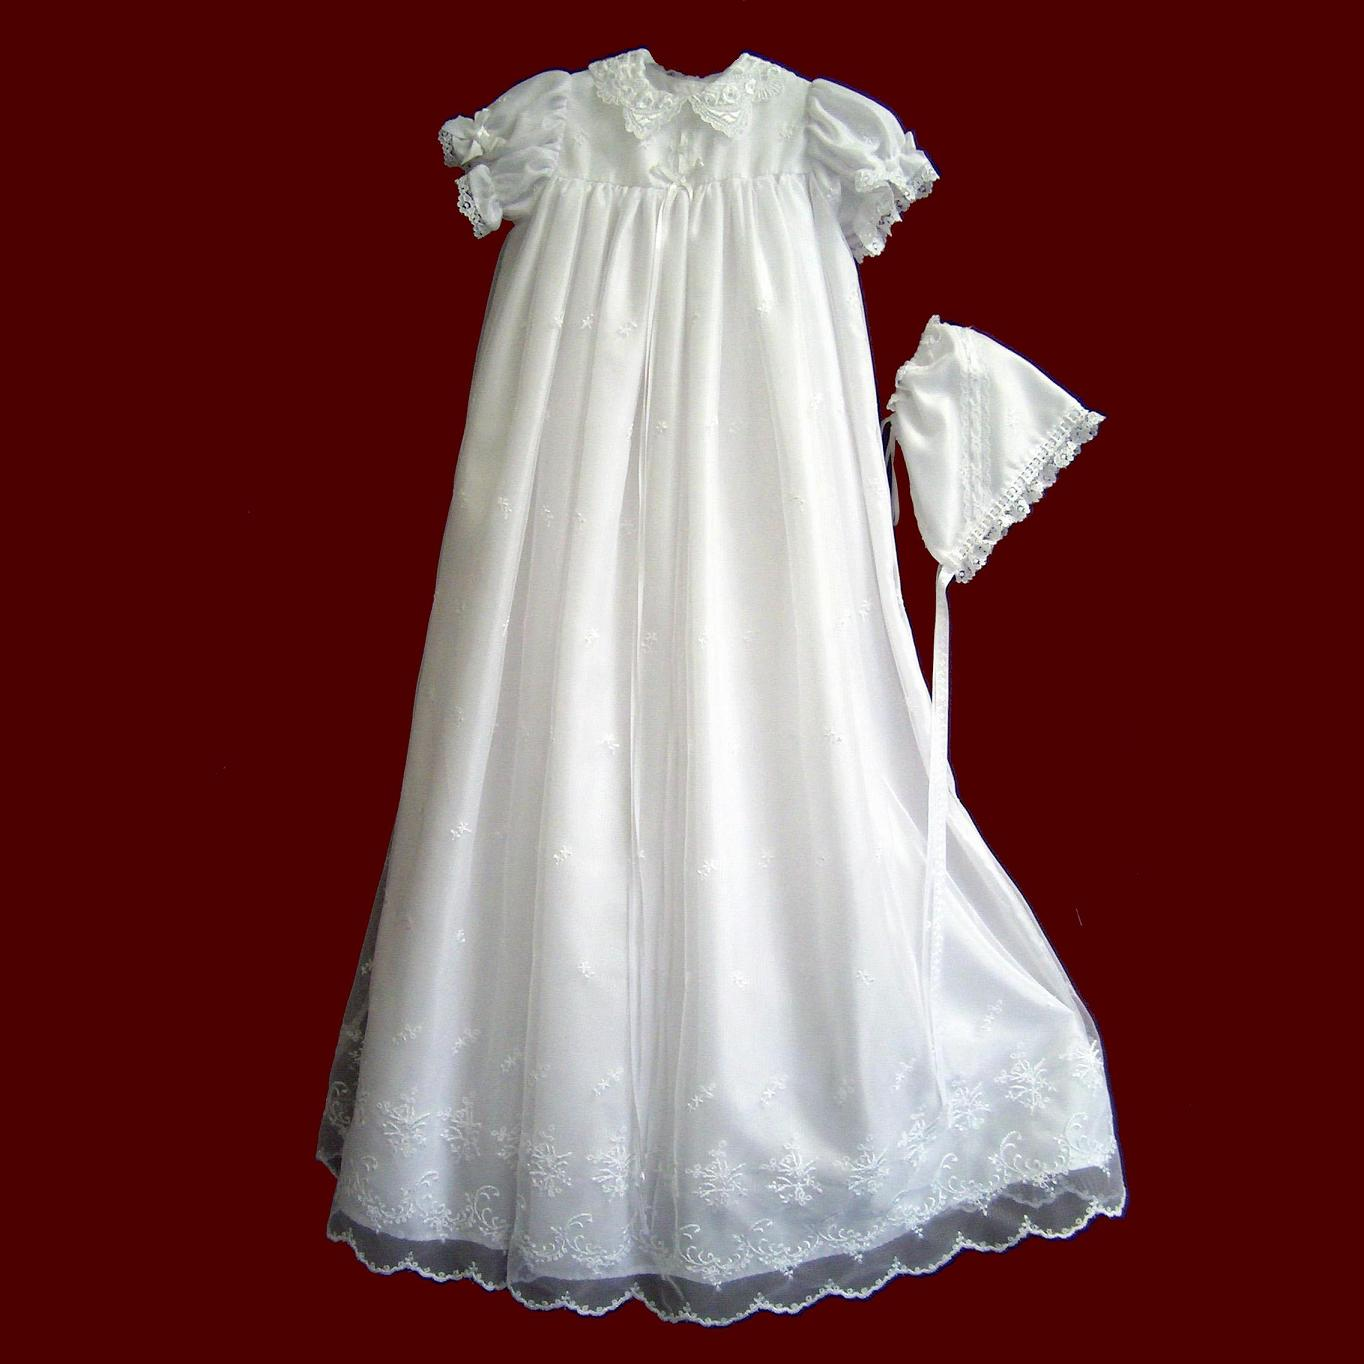 Embroidered Netting Christening Gown - Girls Christening Gowns - Smocked Treasures